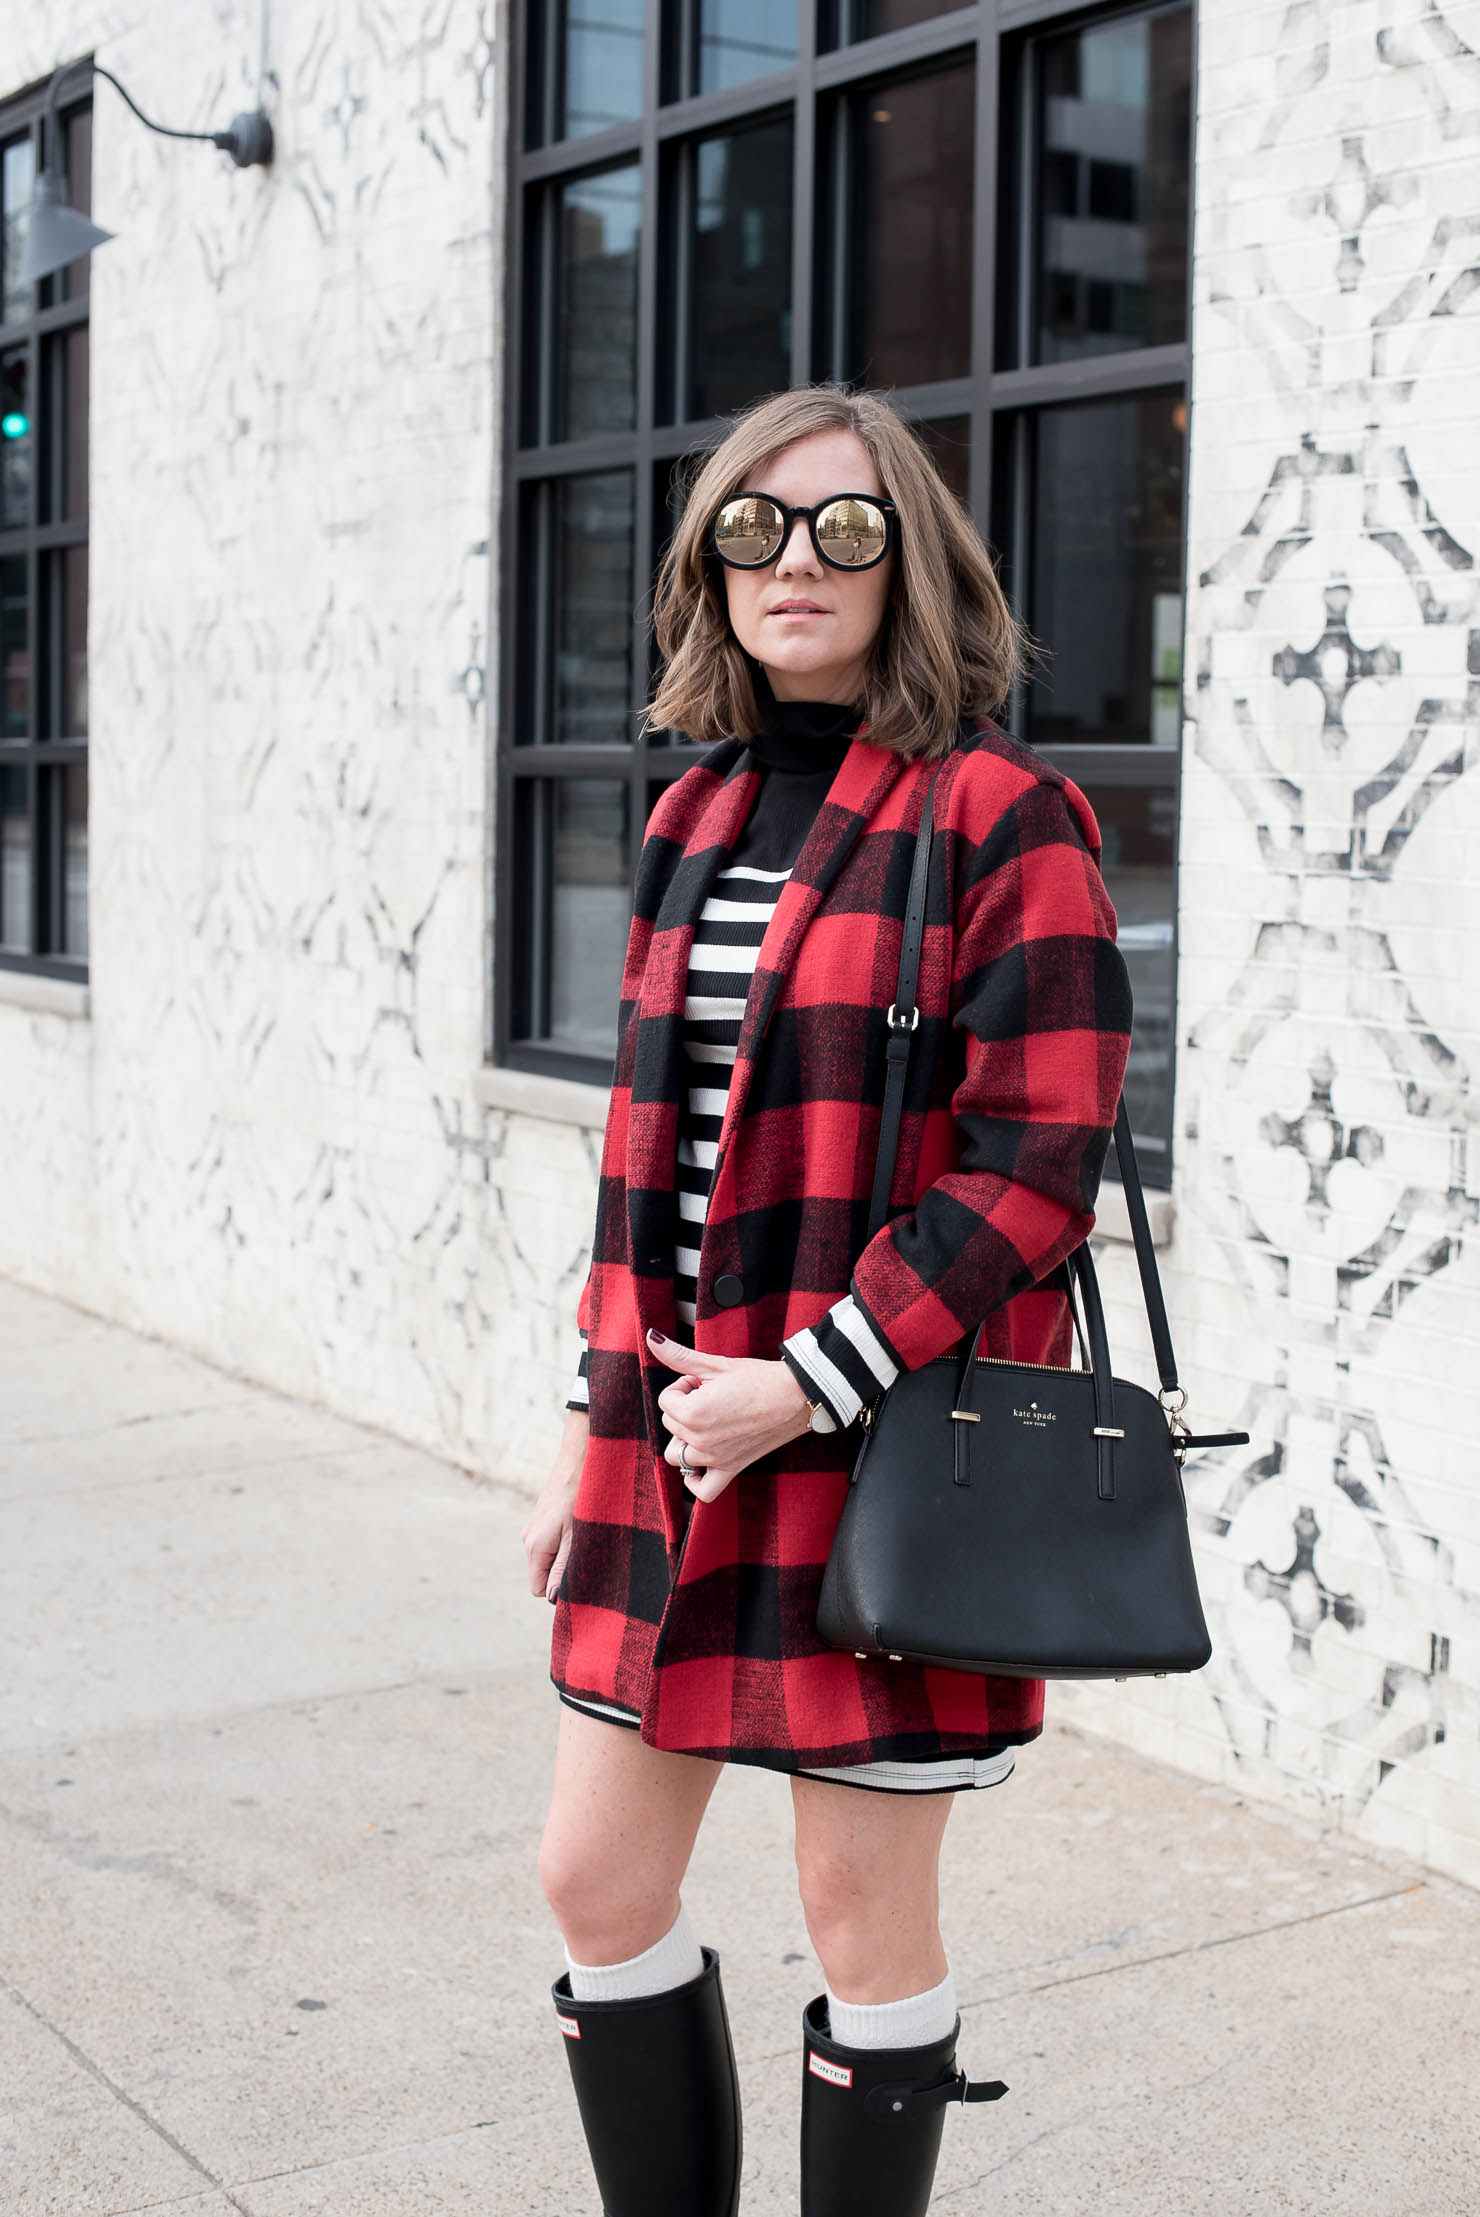 bc4cca25632 black-and-white-striped-mini-dress-and-red-buffalo-plaid-coat-with ...